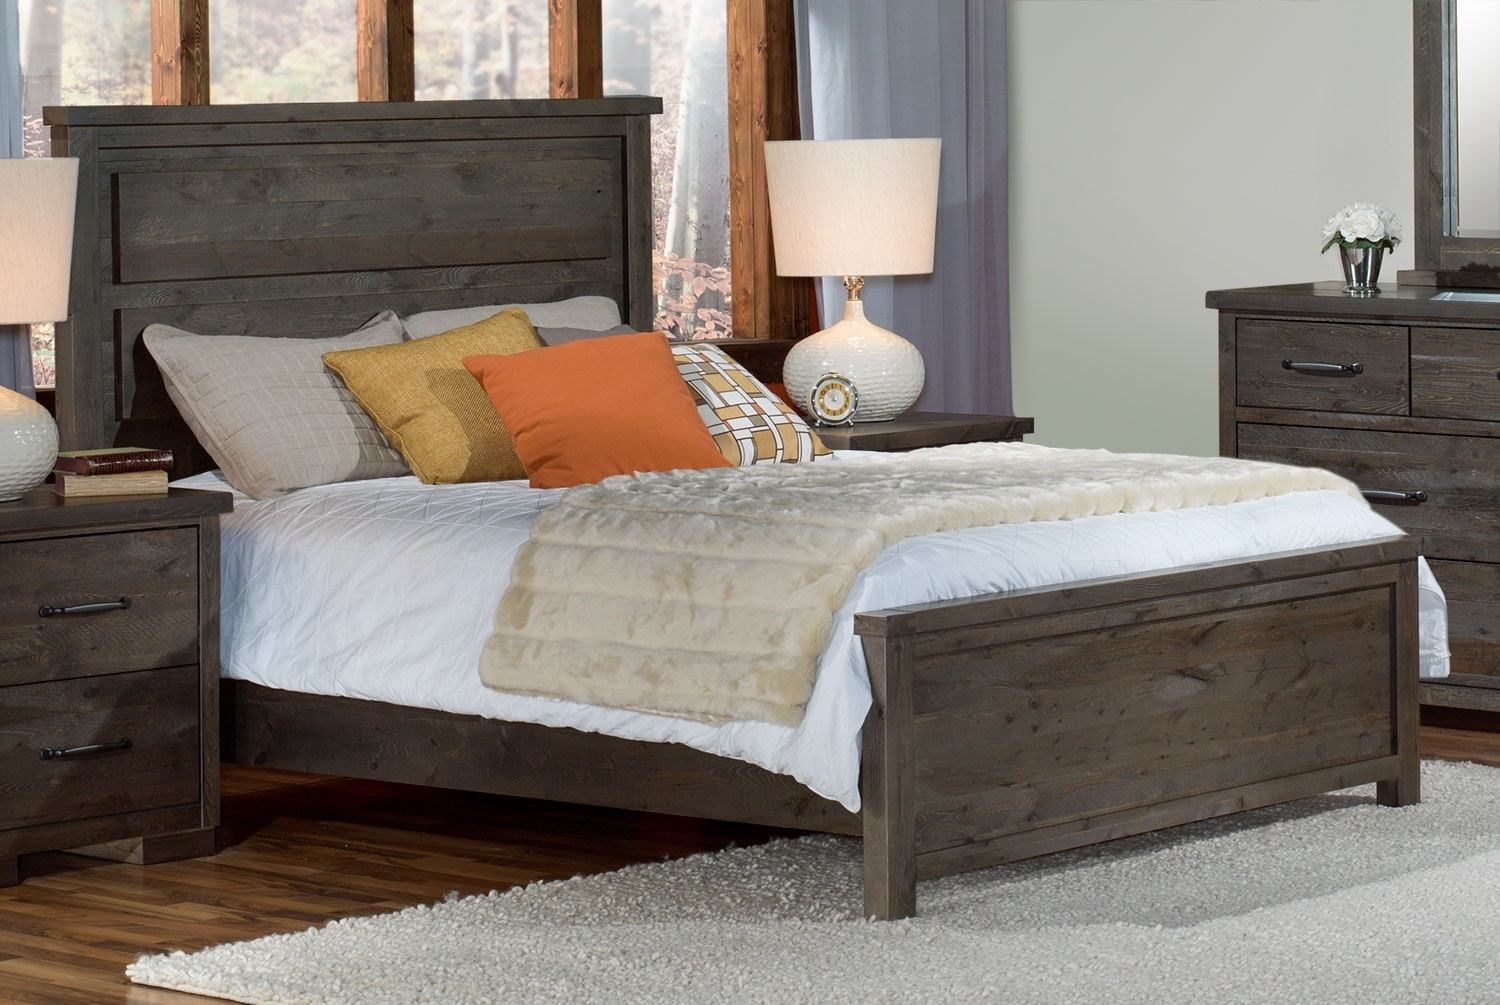 Bedroom Furniture - Pine Ridge King Bed - Slate